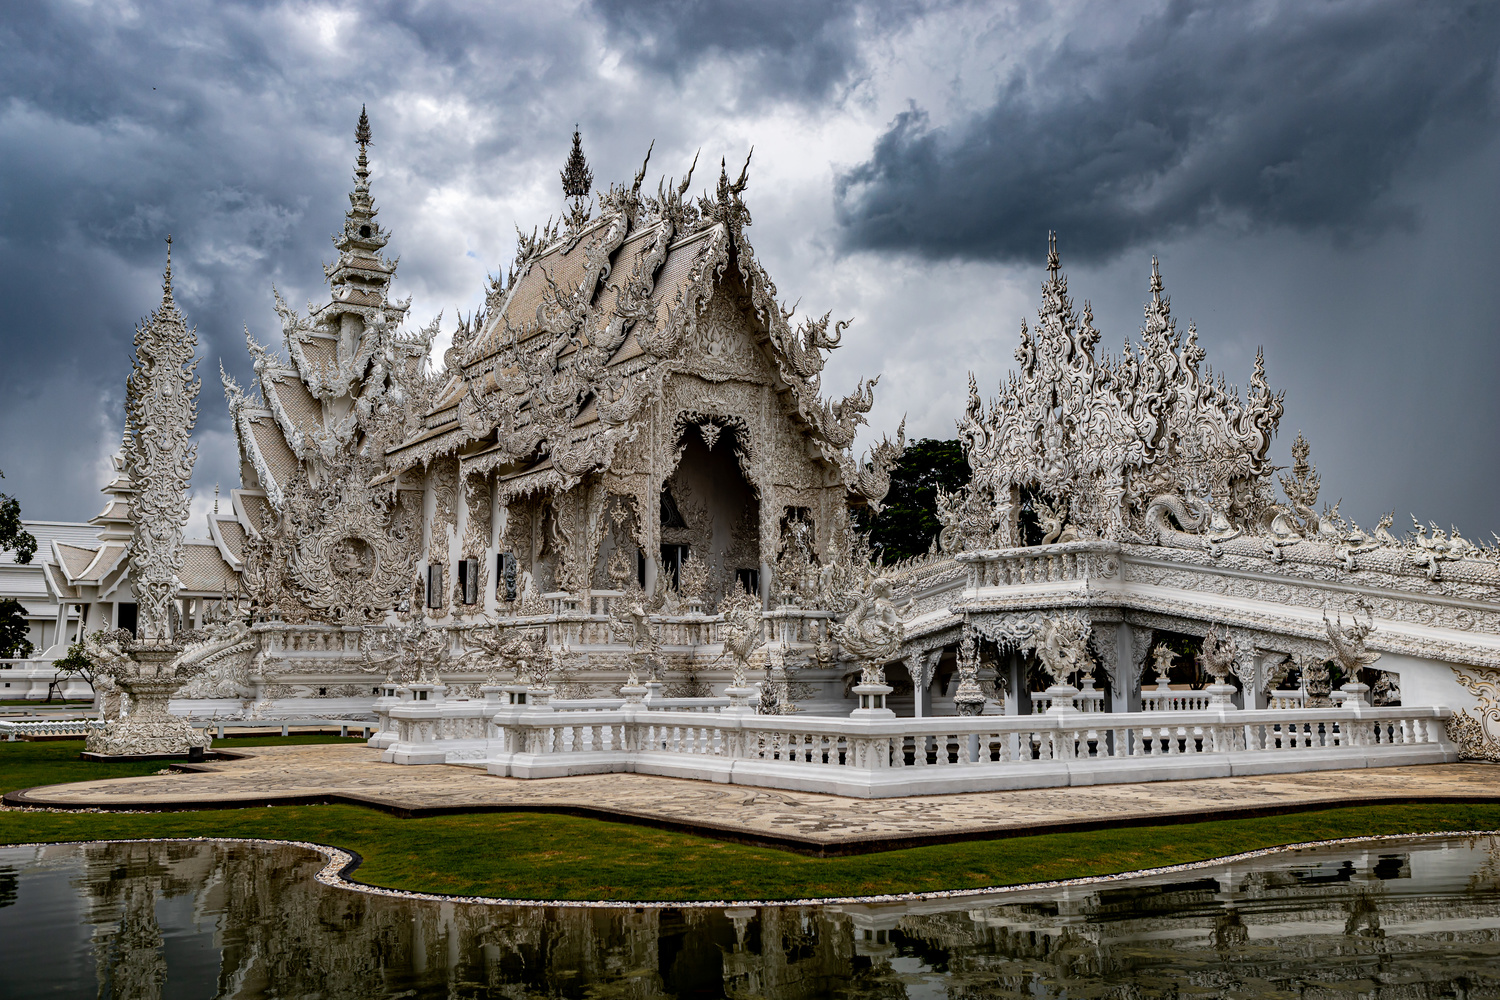 The White Temple in Chiang Rai by Stephen Scully